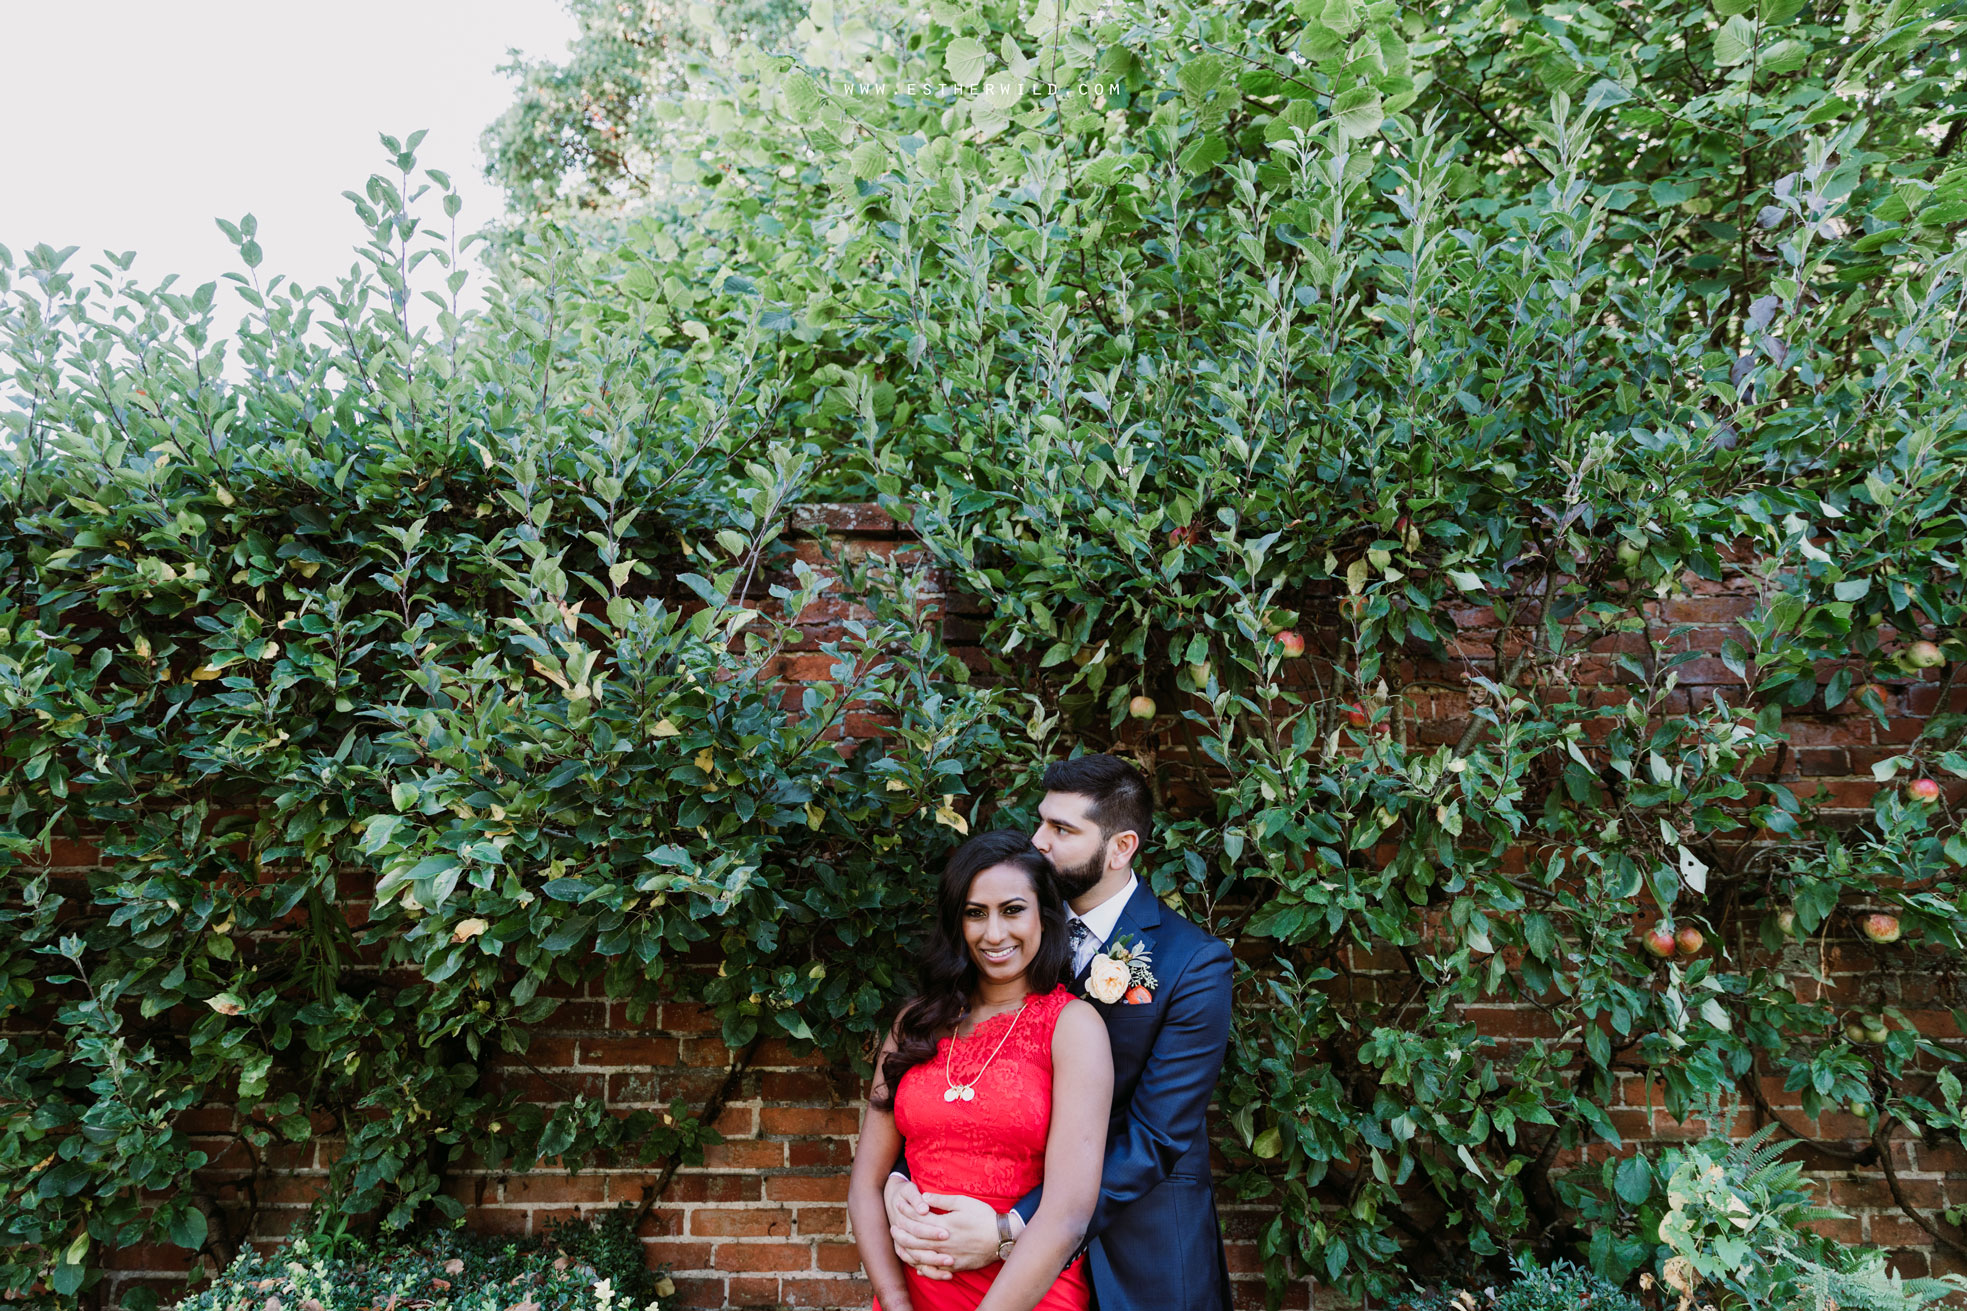 Northbrook_Park_Farnham_Surrey_London_Wedding_Hindu_Fusion_Esther_Wild_Photographer_IMG_5637.jpg